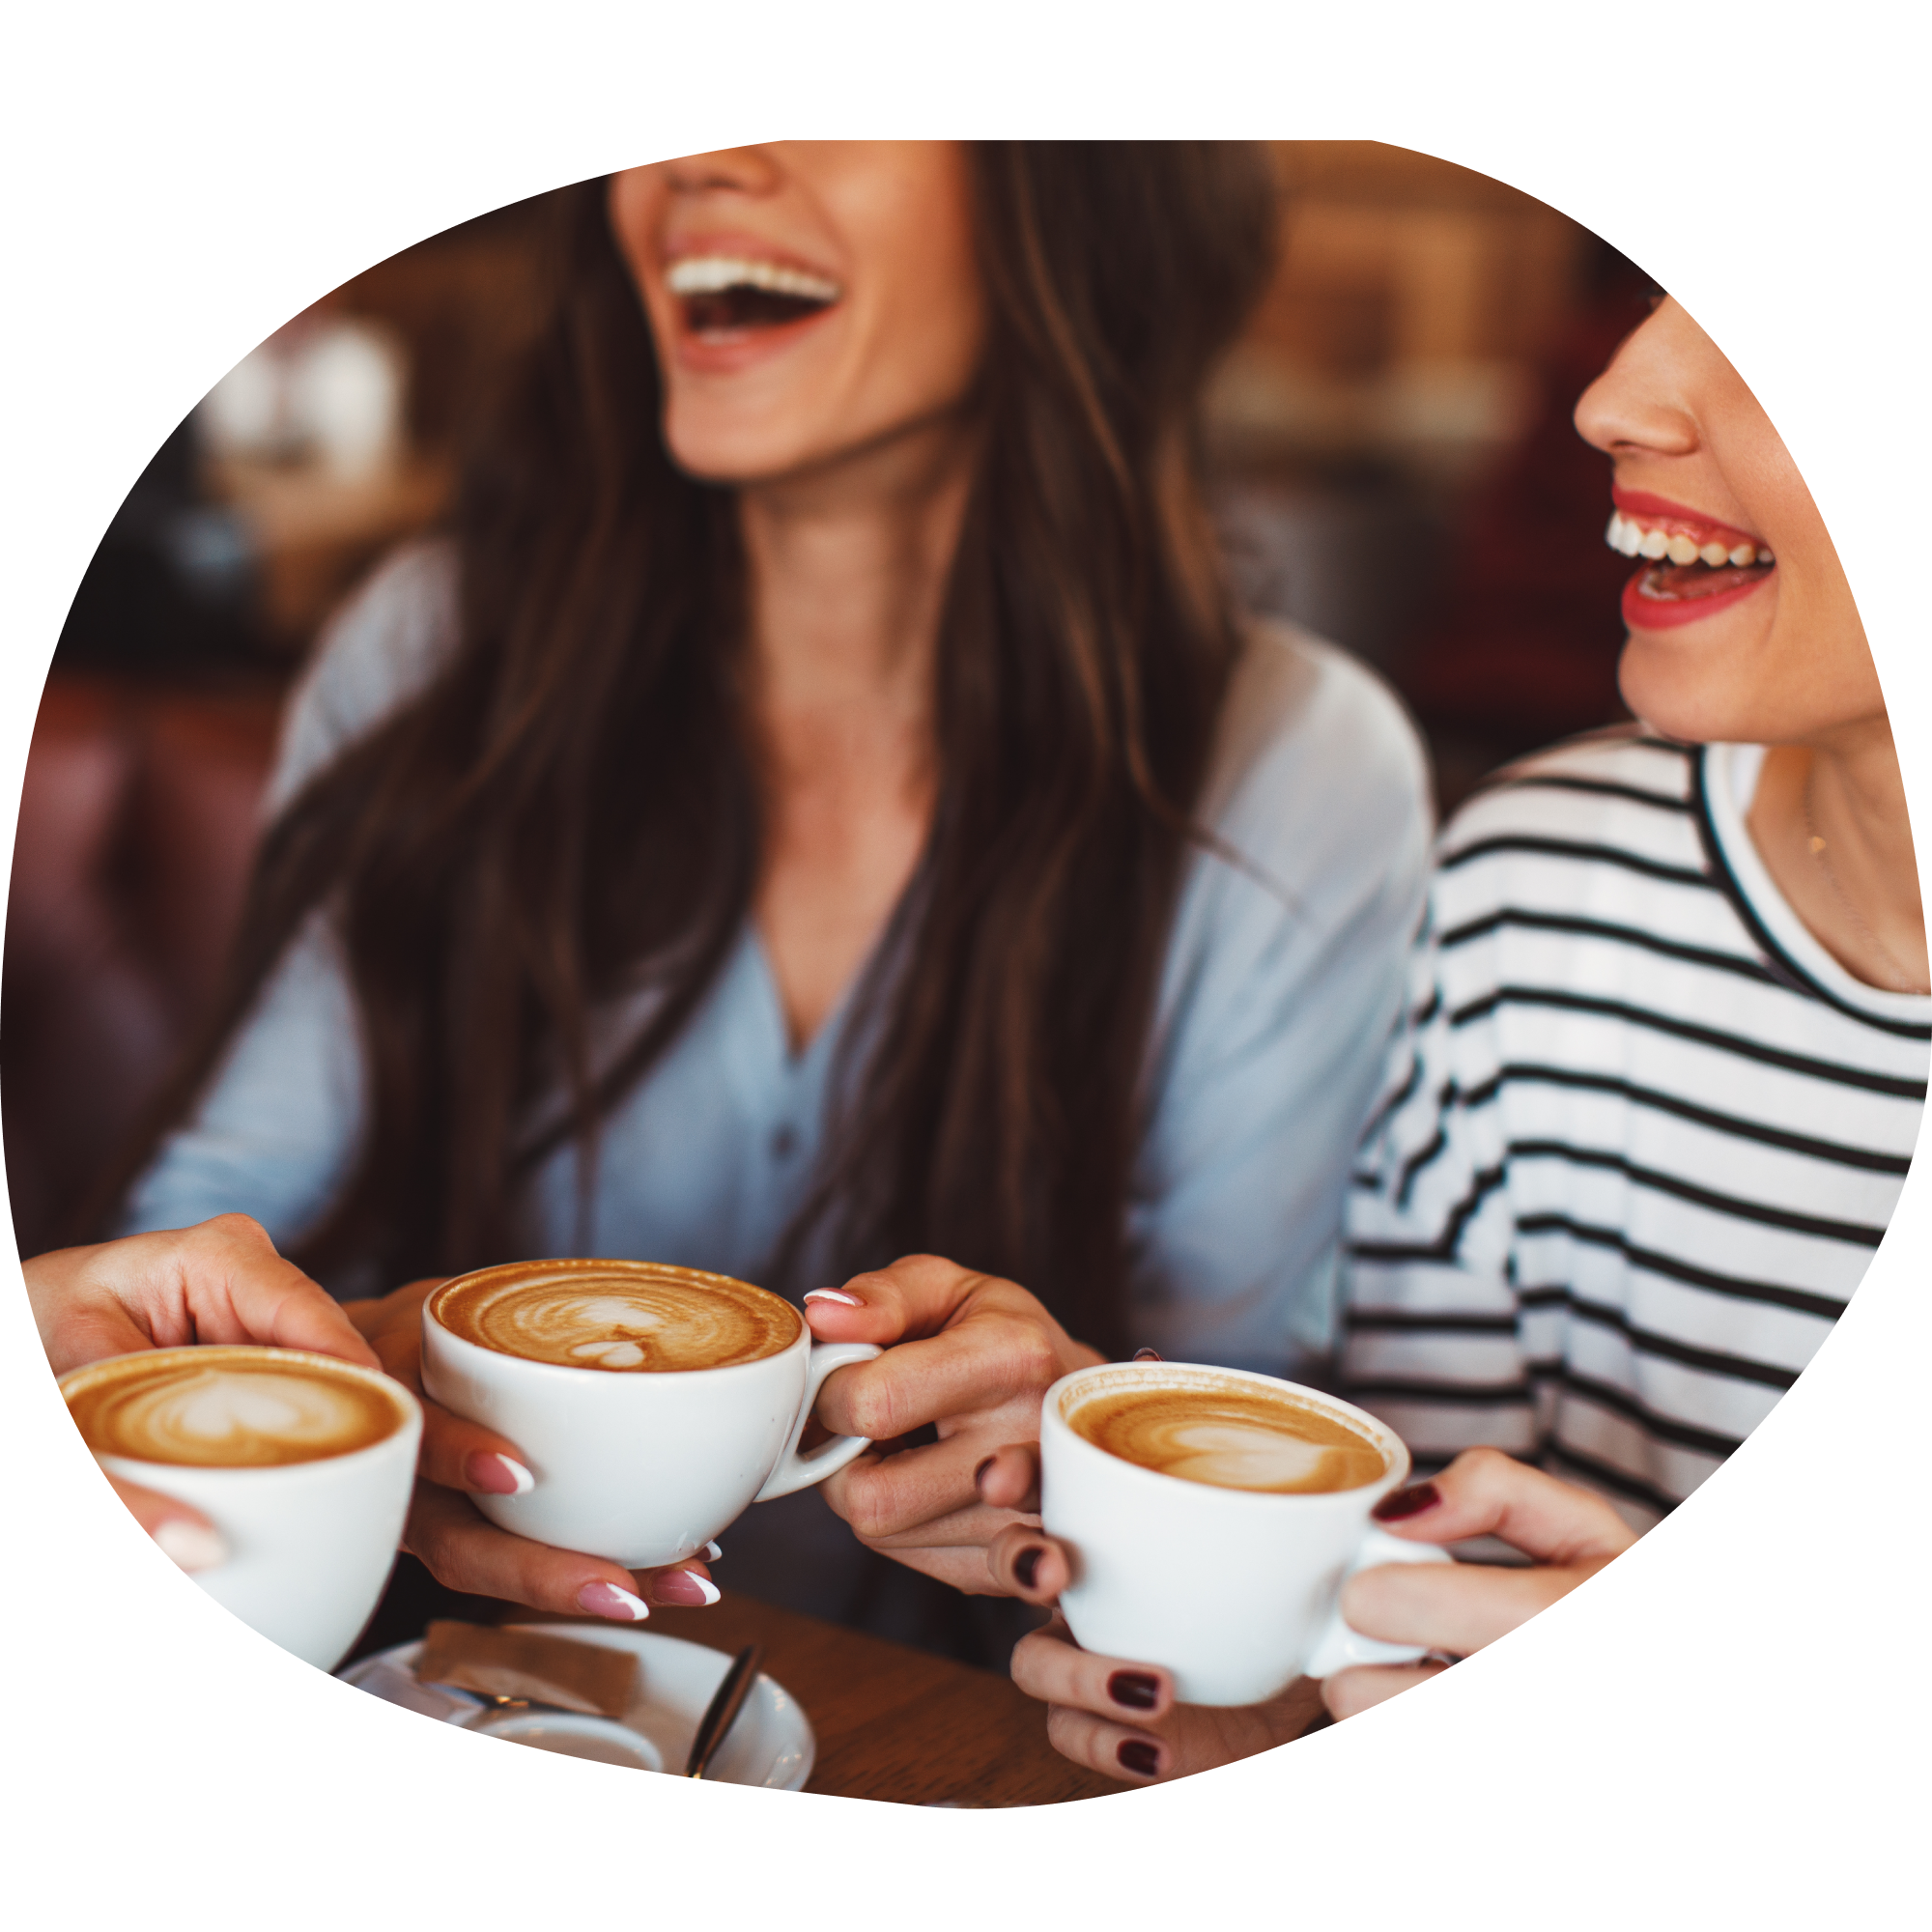 Friends at coffee shop laughing together